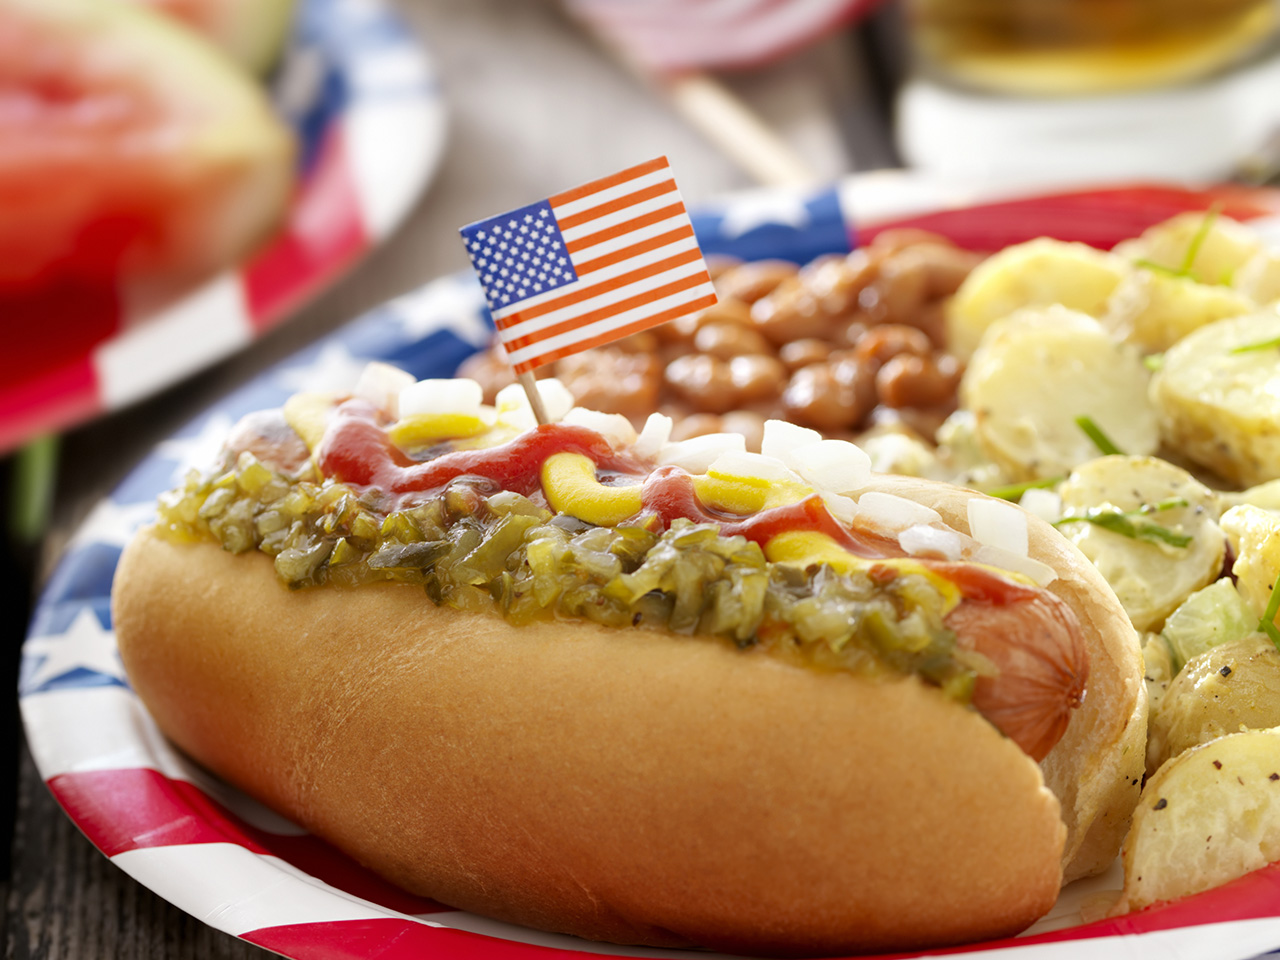 10 Of The Best Street Foods Across The World - 6. NYC - Hot Dogs